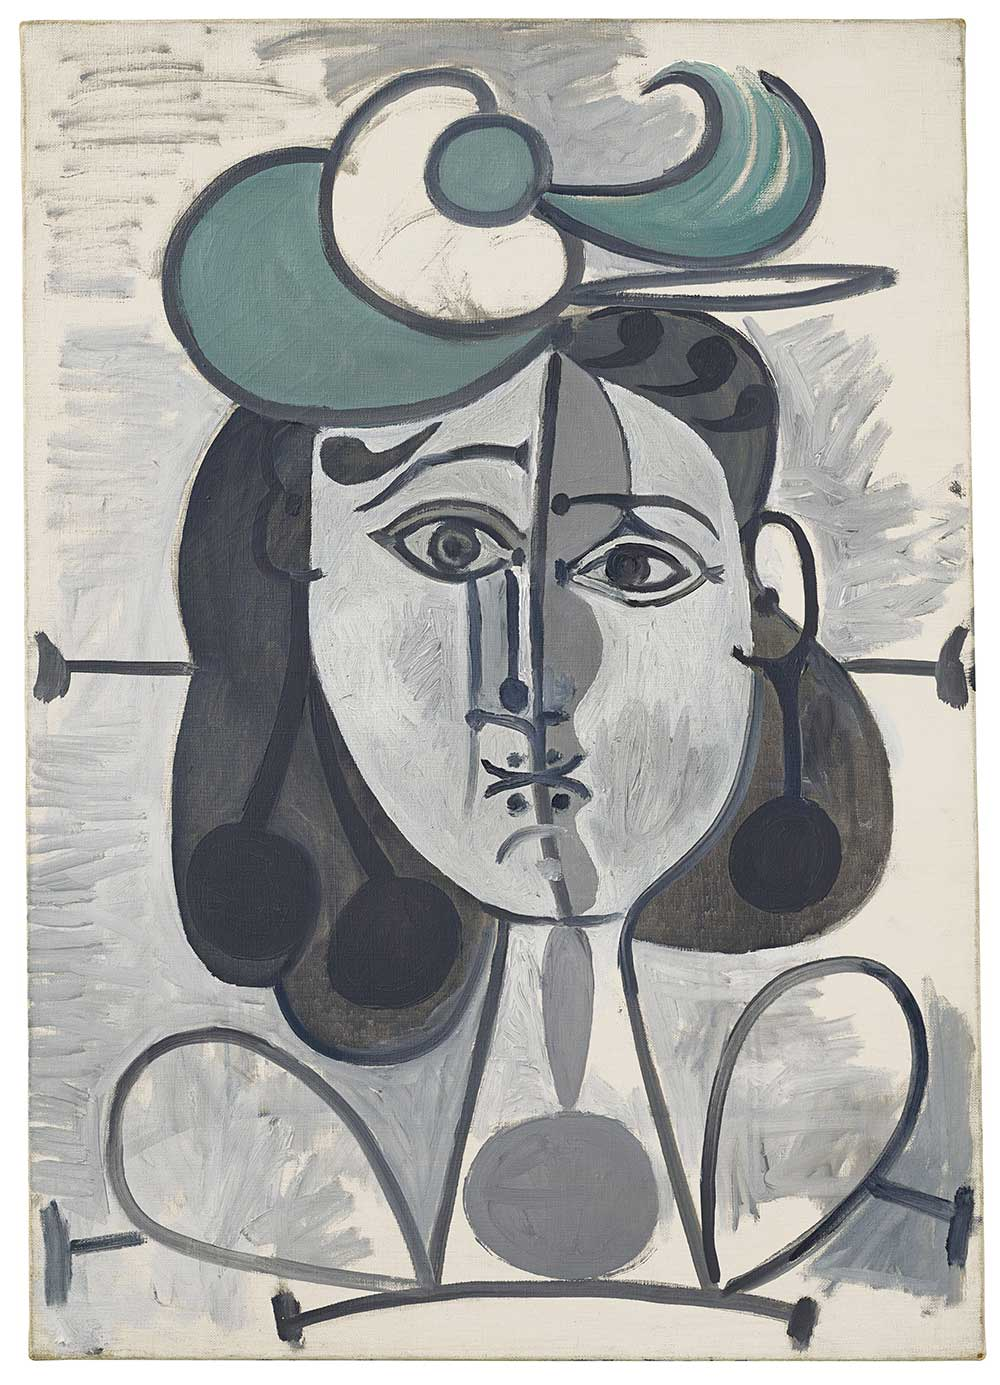 Pablo Picasso,《Portrait de Françoise Gilot》,Painted between 2 May 1947 and 26 December 1948。預估價300-500萬美元。圖/佳士得提供。